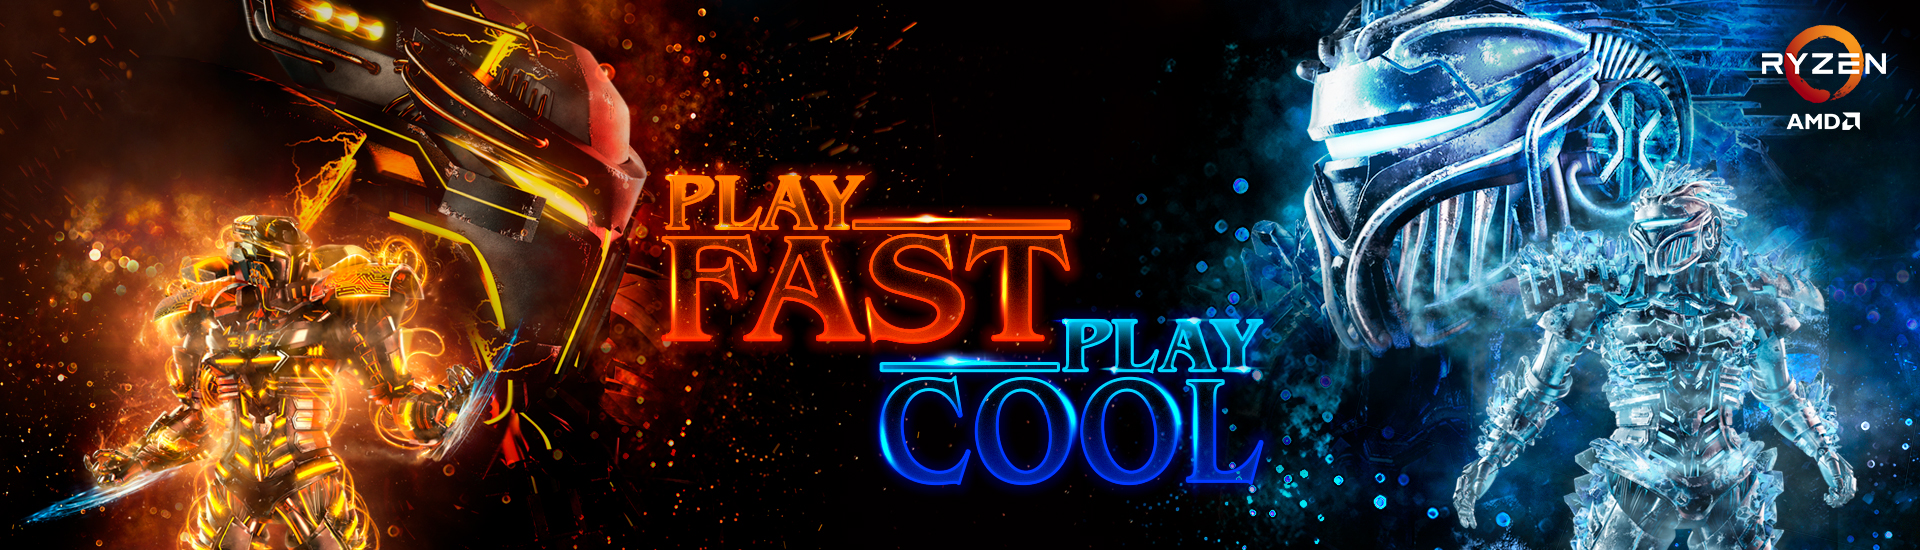 PLAY FAST AND PLAY COOL